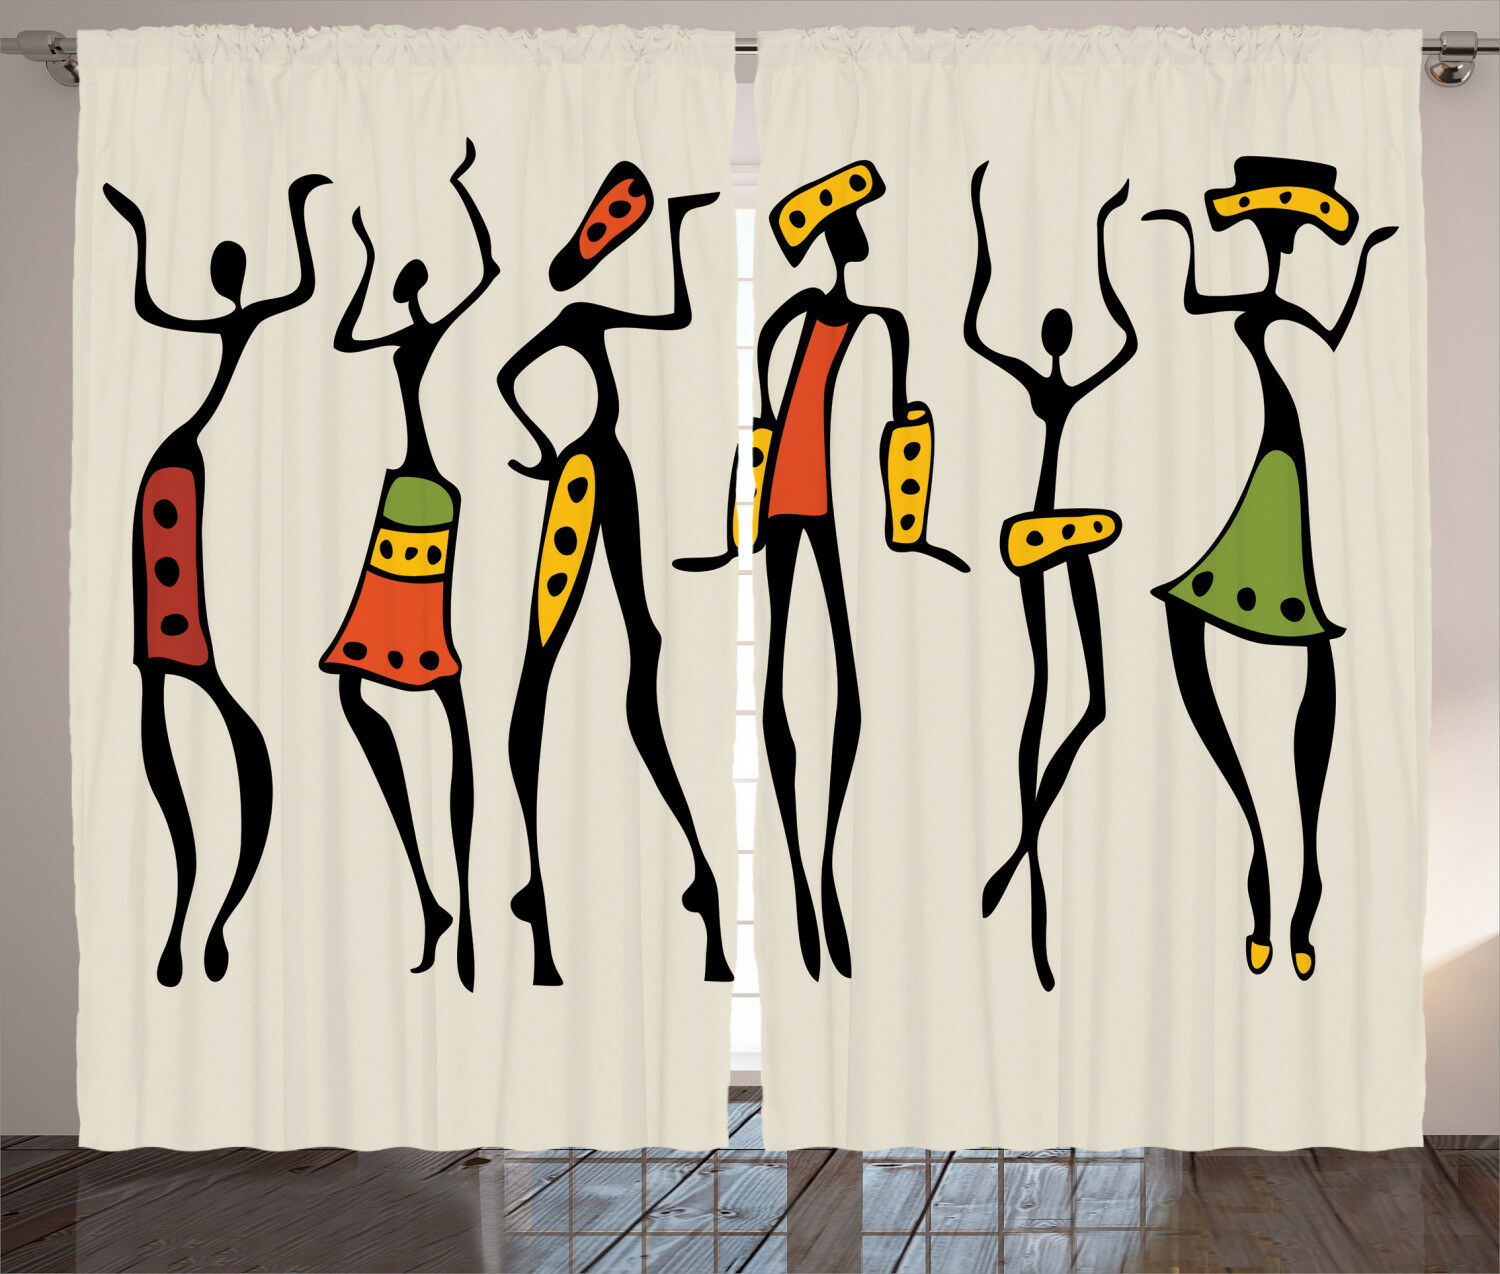 Afro Curtains Curtains Curtains African Clan Dancer Ethnic Window Drapes 2 Panel Set 108x84 Inches 75ef99